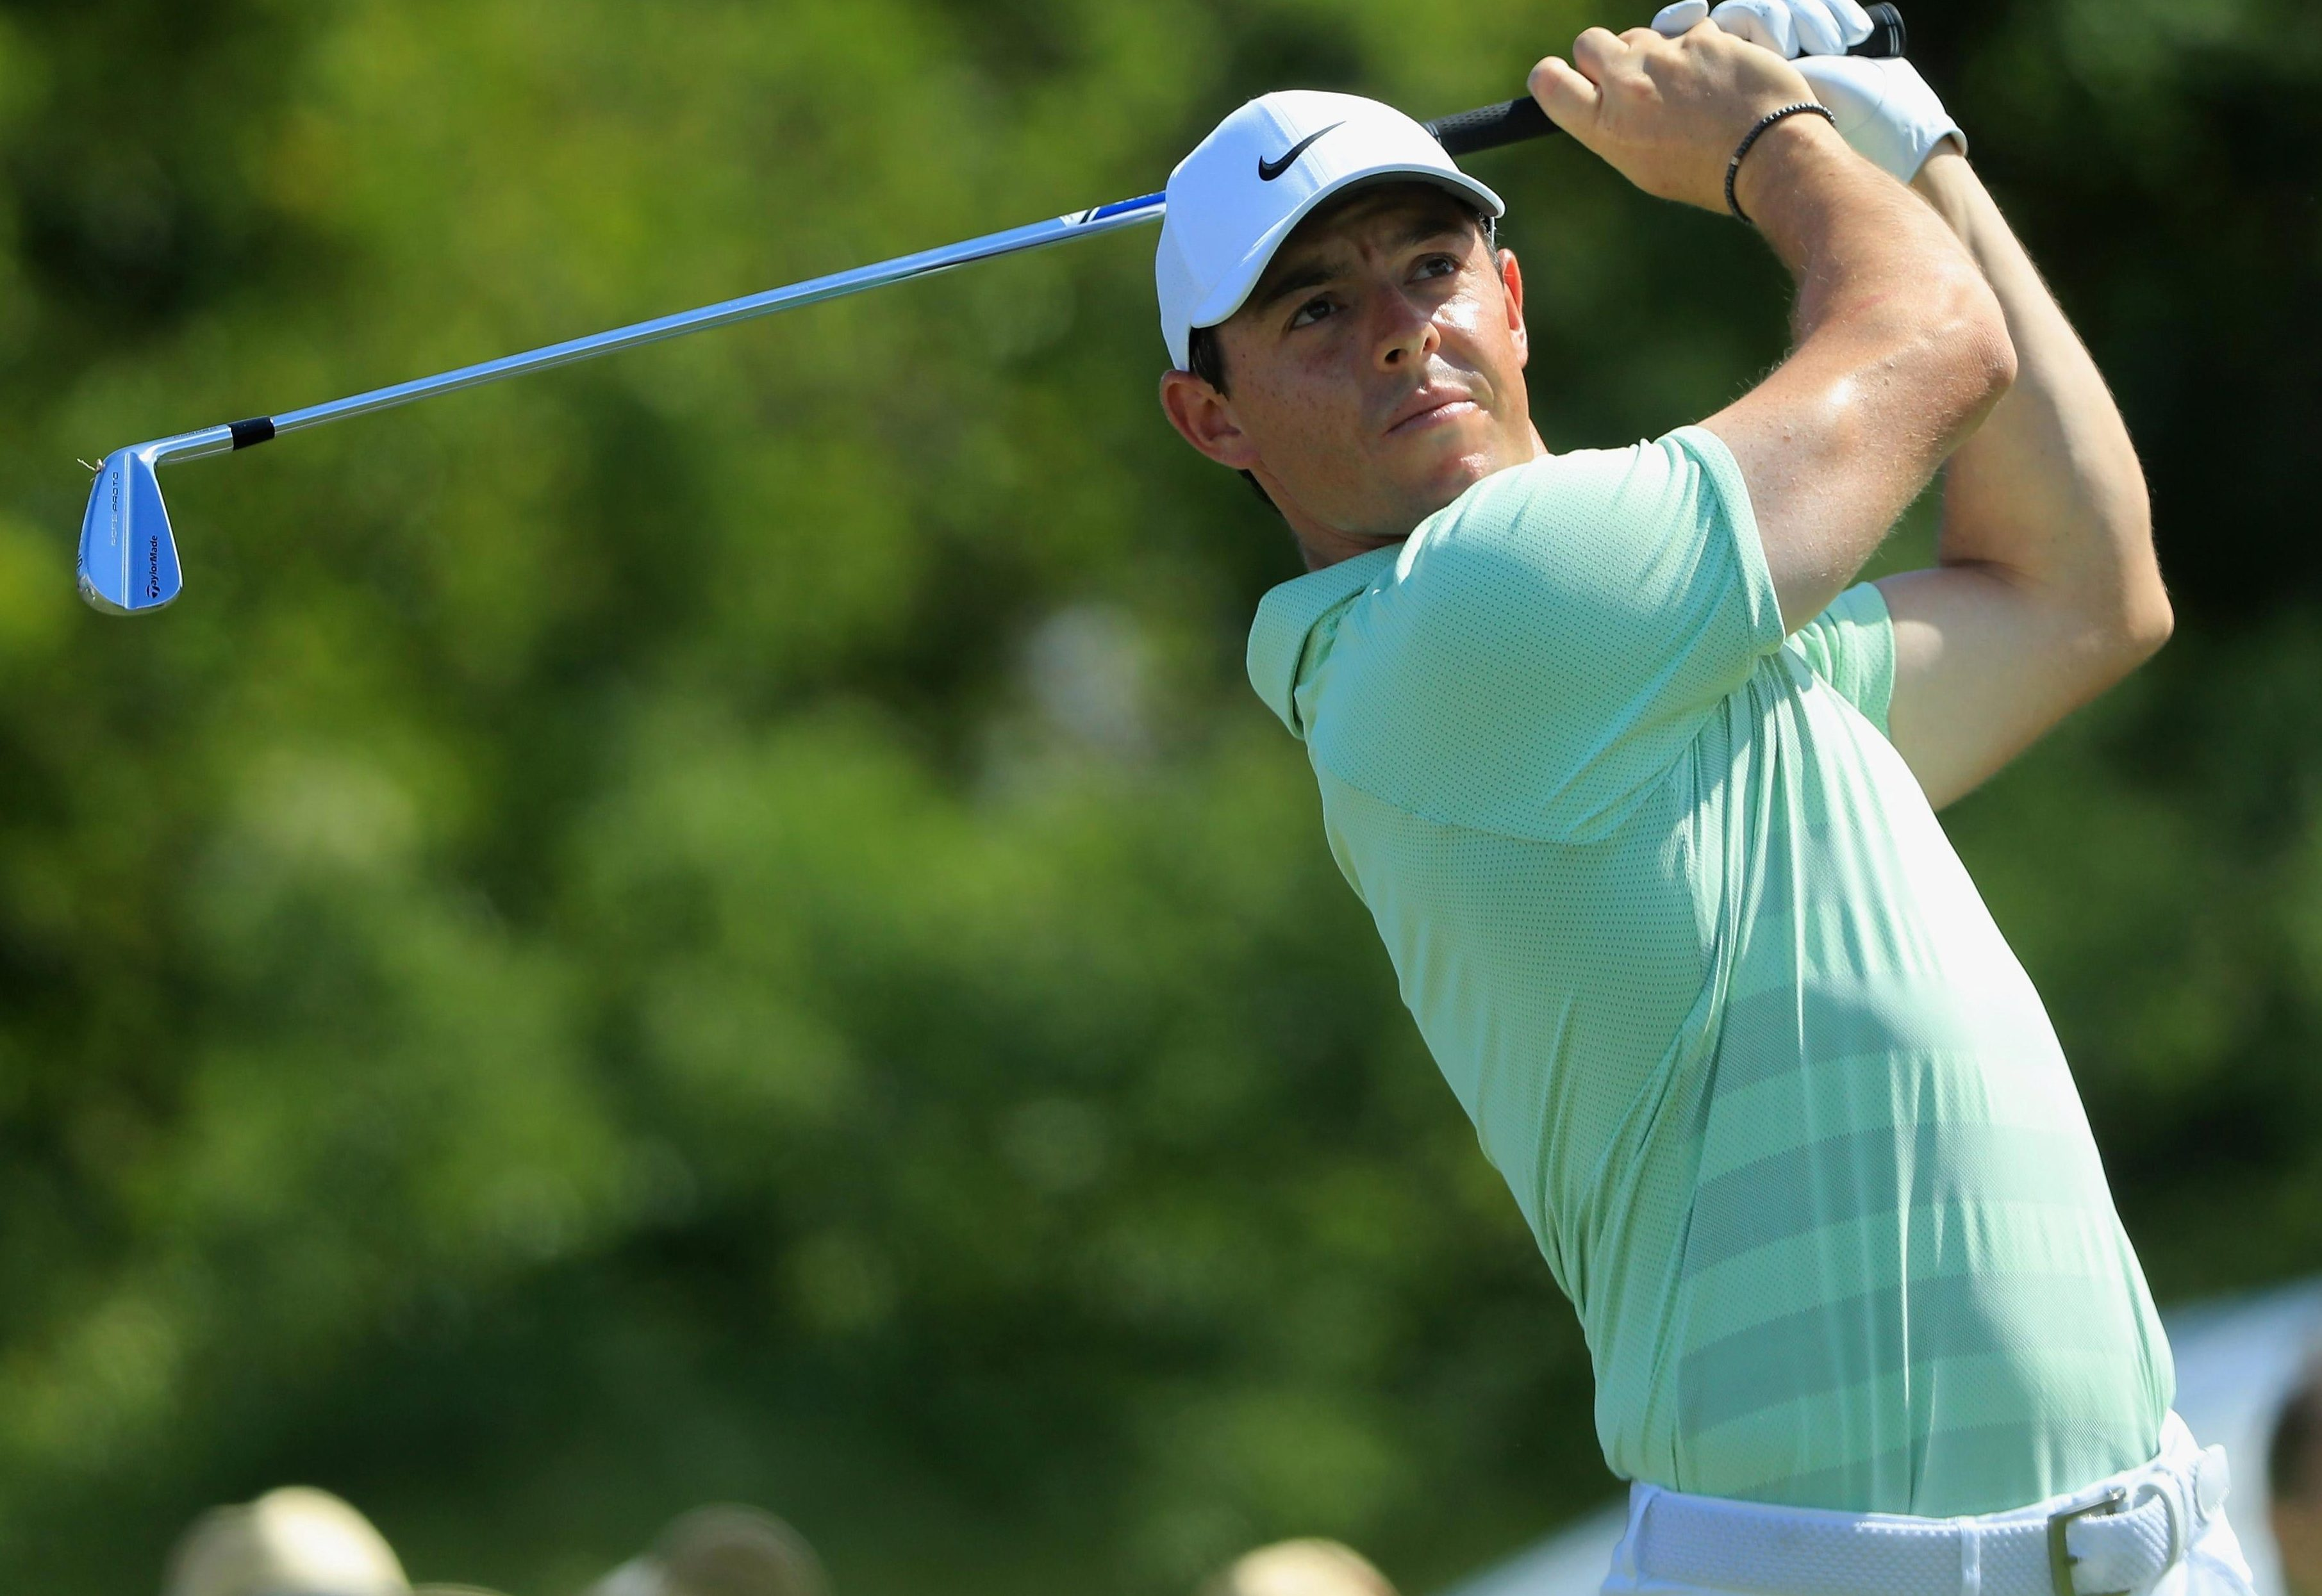 The Northern Irishman will be hoping to carry on his momentum at the Masters